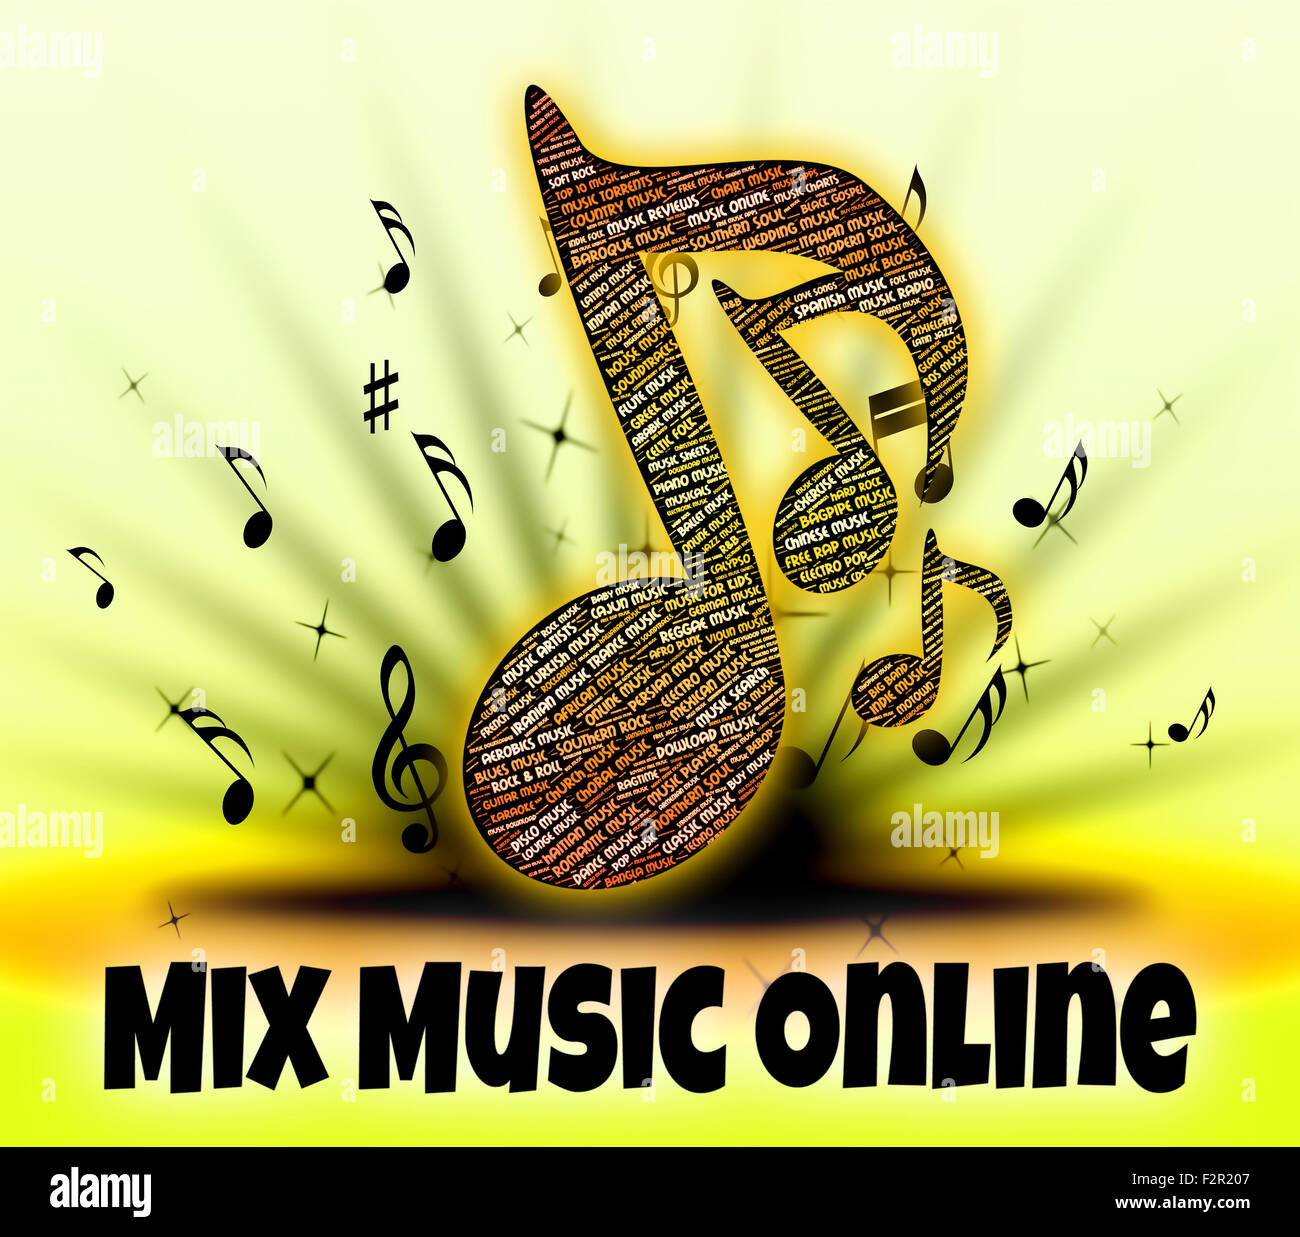 Mix Music Online Indicating Put Together And Combine Stock